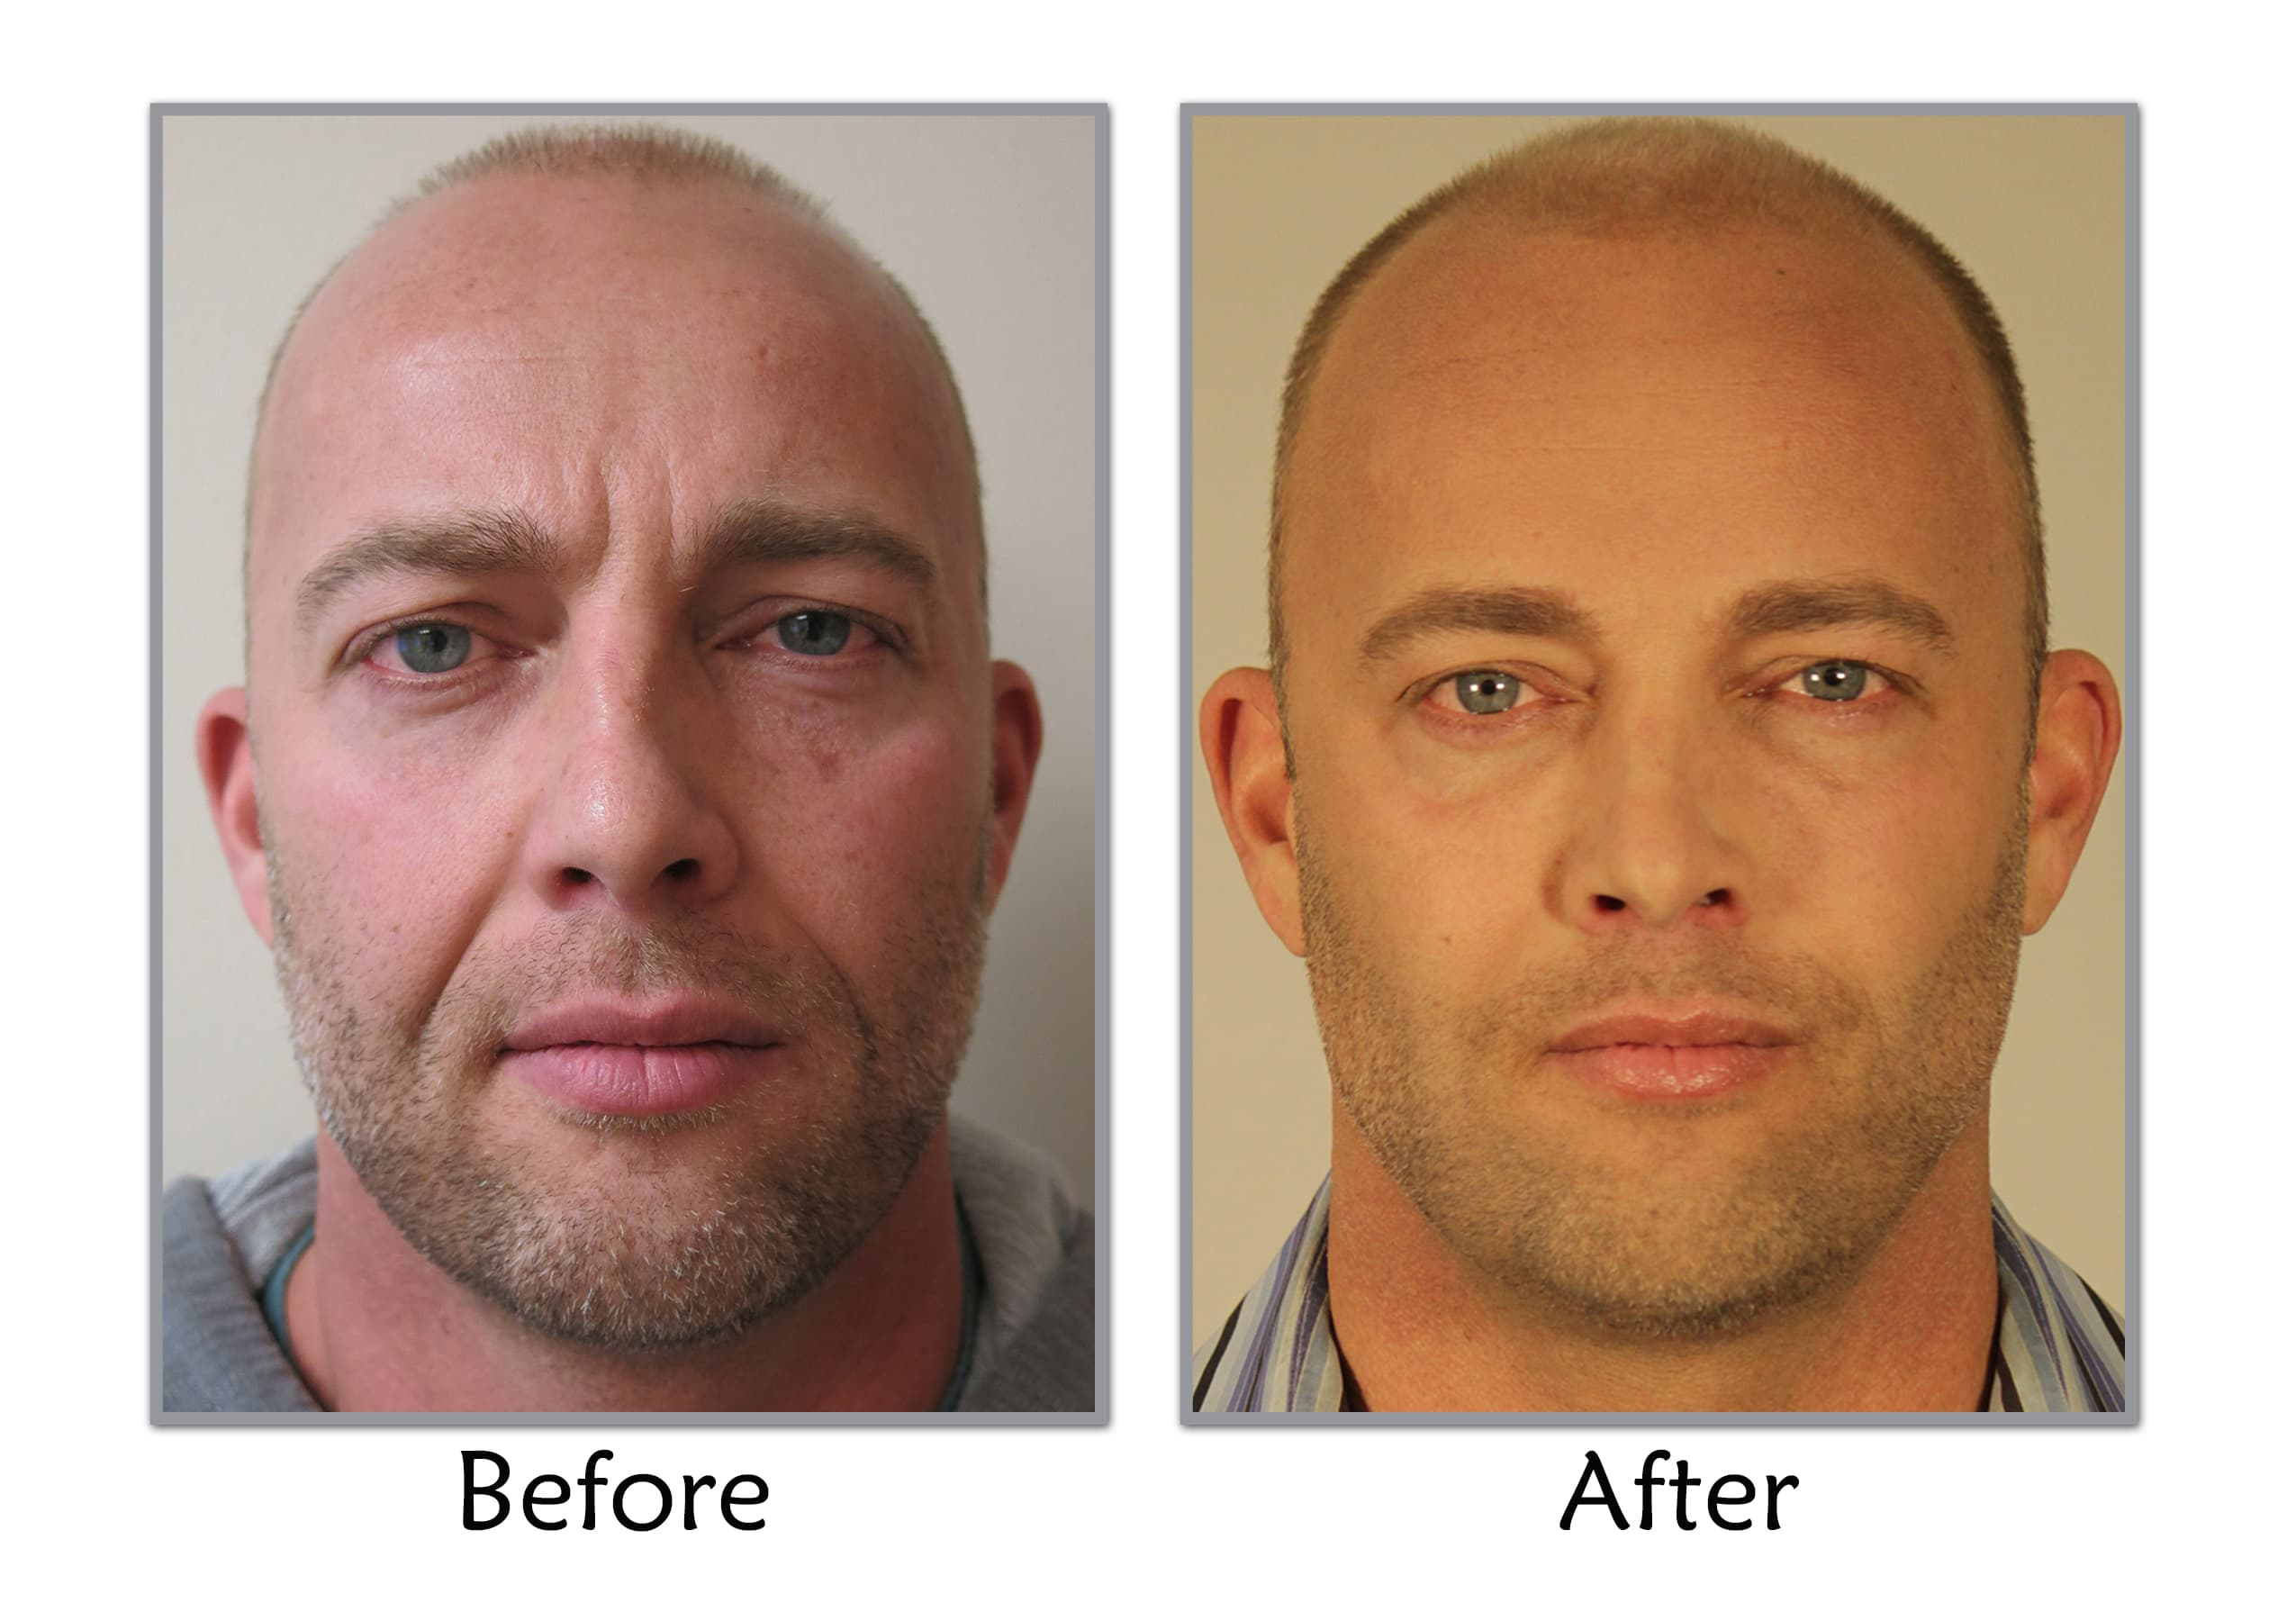 Male Enhancement Plastic Surgery Before And After Video photo - 1